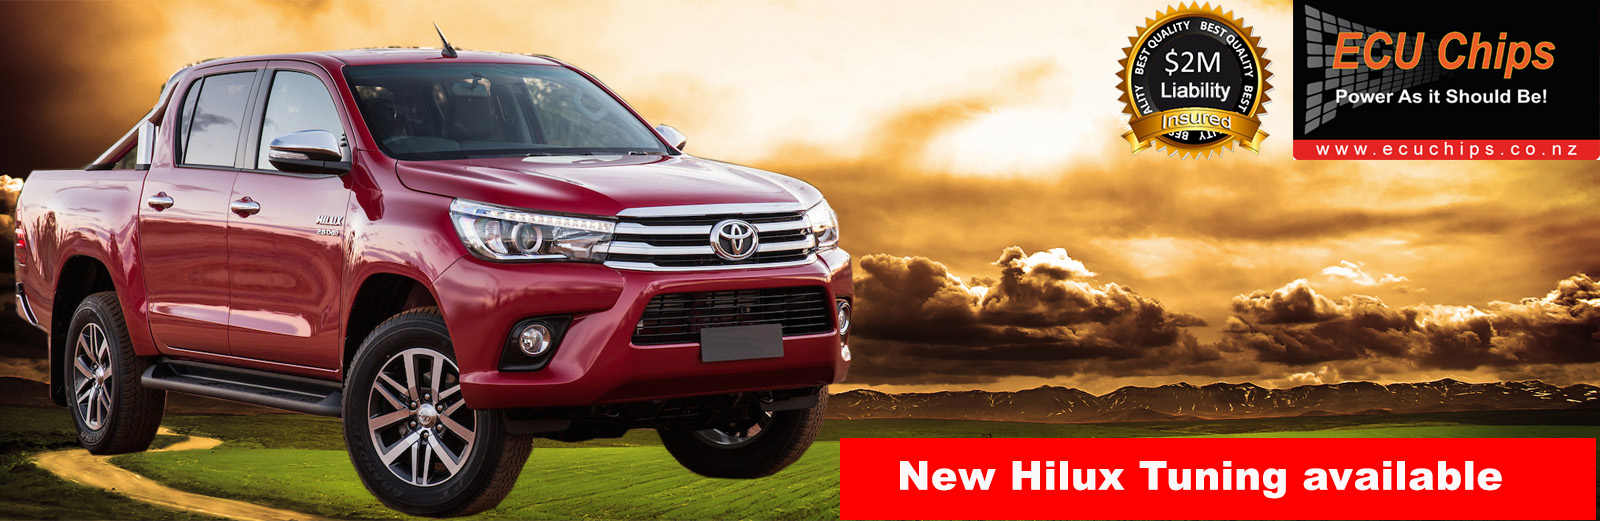 New-Hilux-2016-